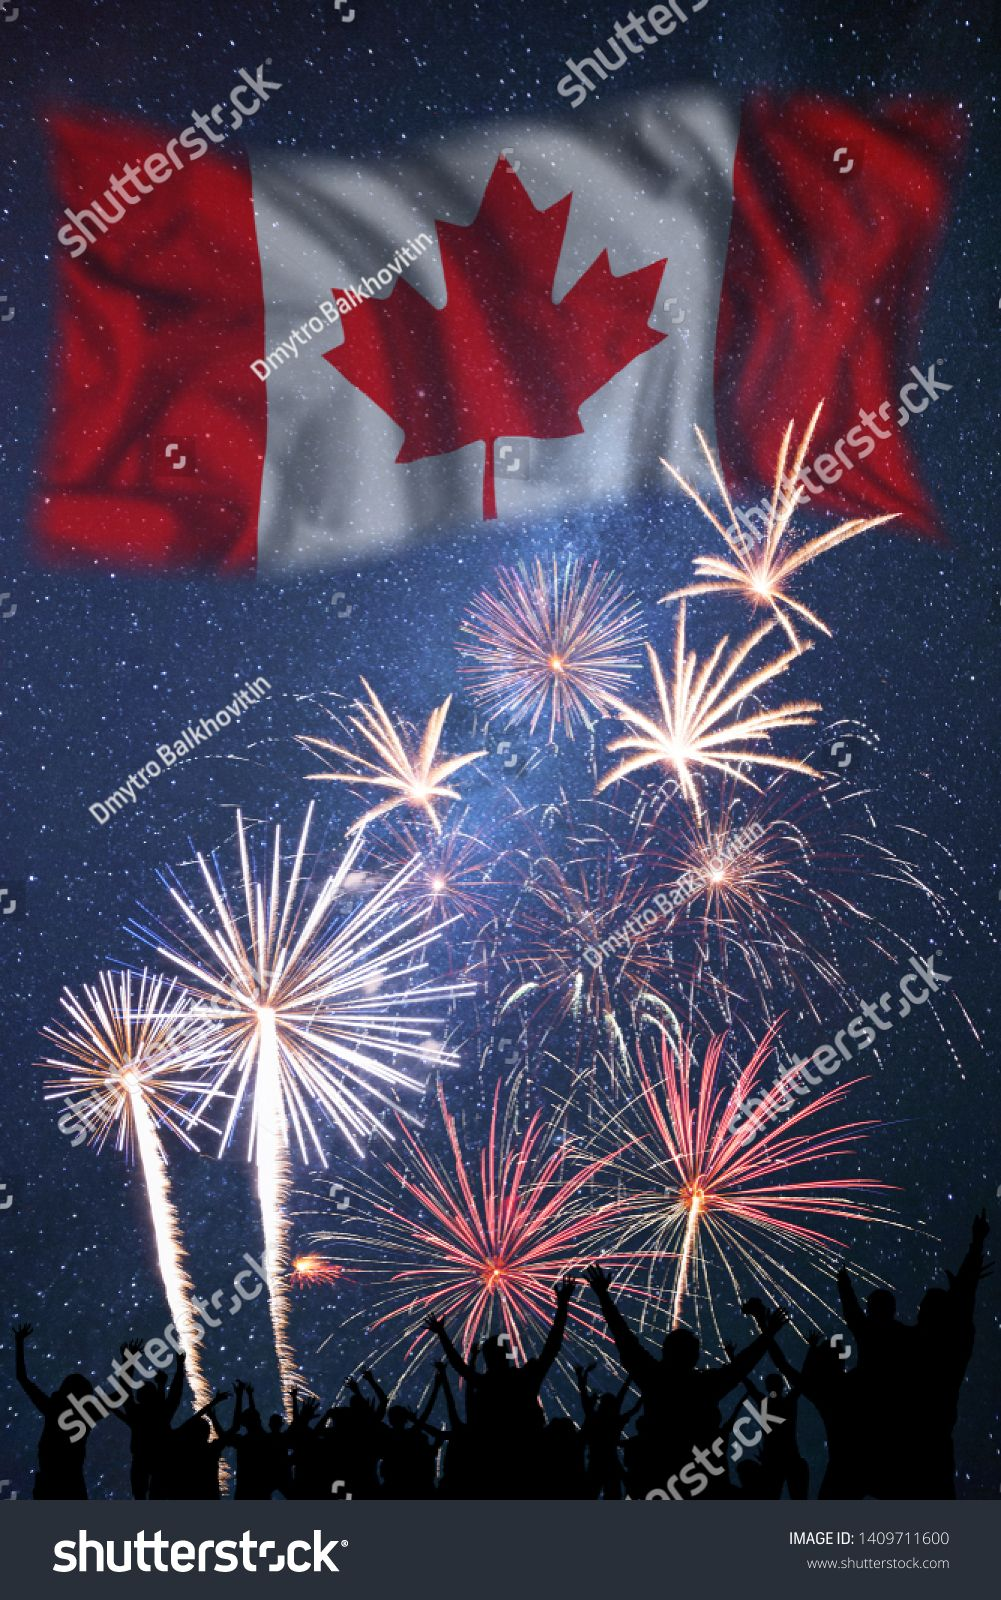 People Looks Holiday Fireworks On Independence Day Of Canada Flag In Sky Ad Aff Fireworks Independence People Holiday In 2020 Fireworks Holiday Independence Day